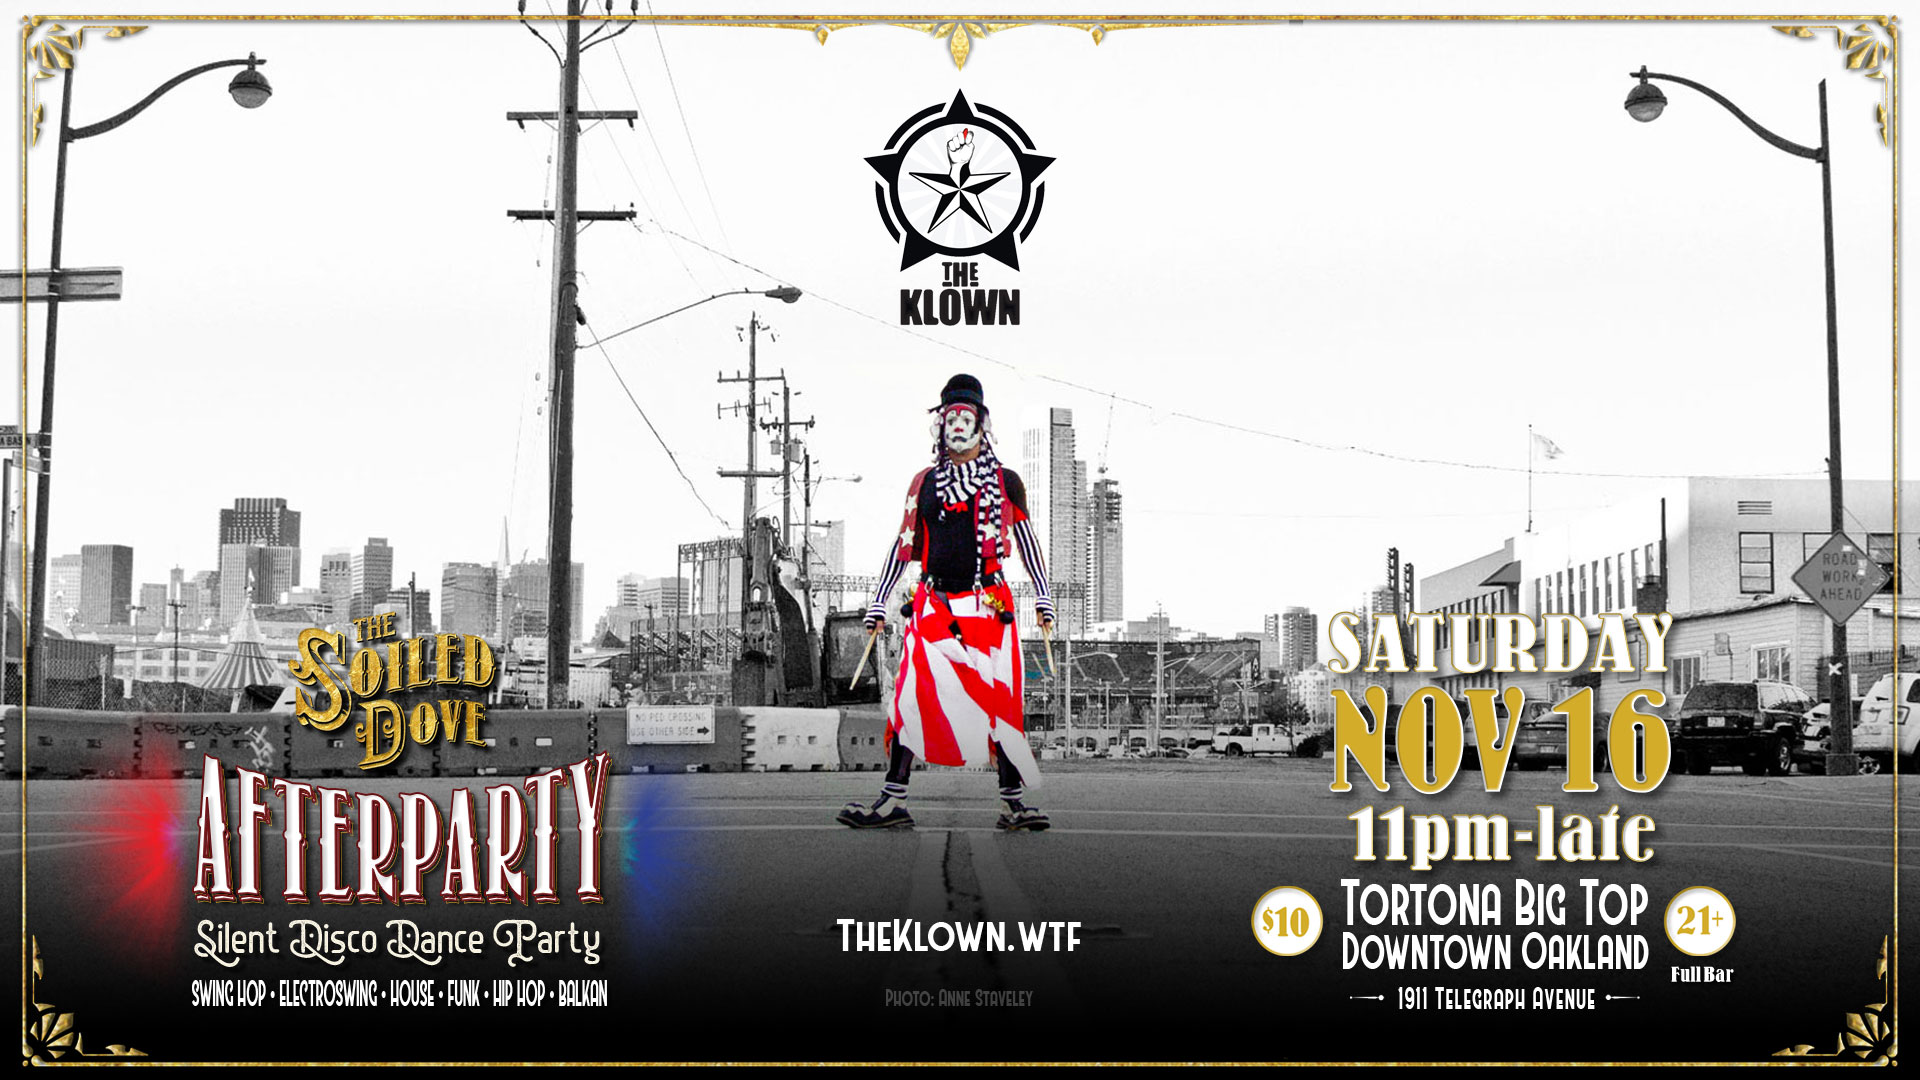 The Klown DJ residency at The Soiled Dove Silent Disco Afterparty - Saturday, November 16, 2019 - Tortona Big Top in Oakland, California